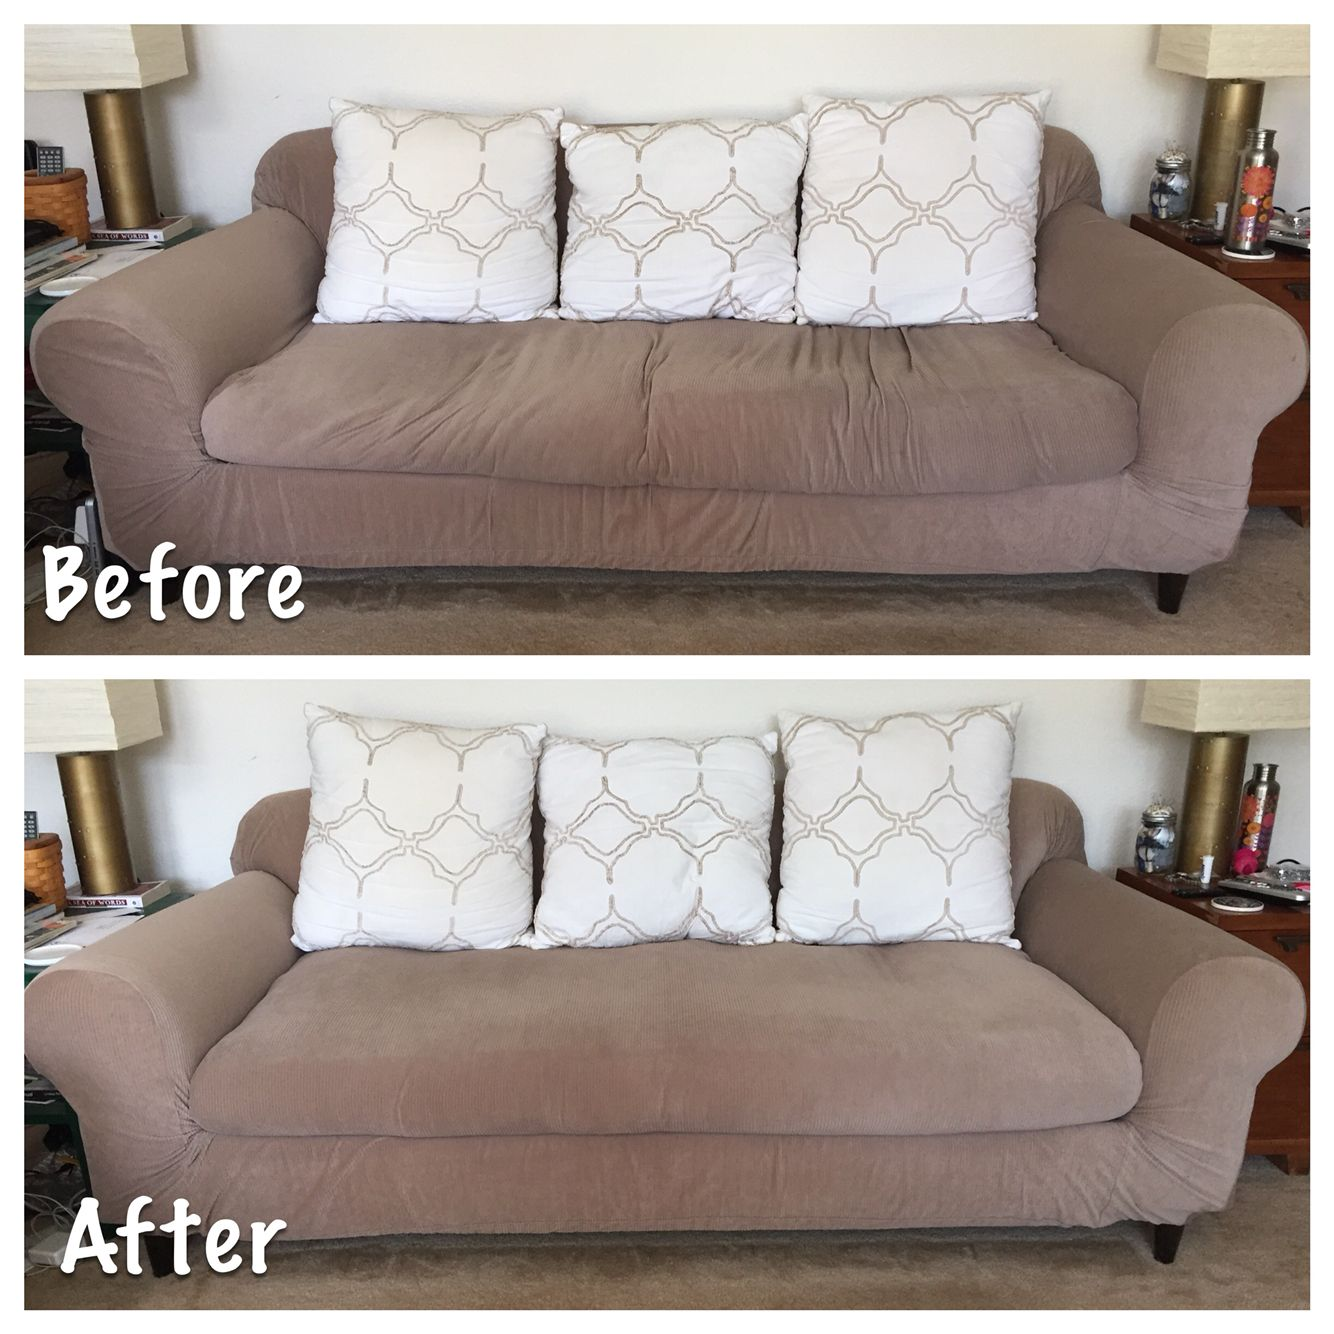 Restuffed Bottom Couch Cushion With Foam Mattress Topper Batting And An Old Sheet 4 19 15